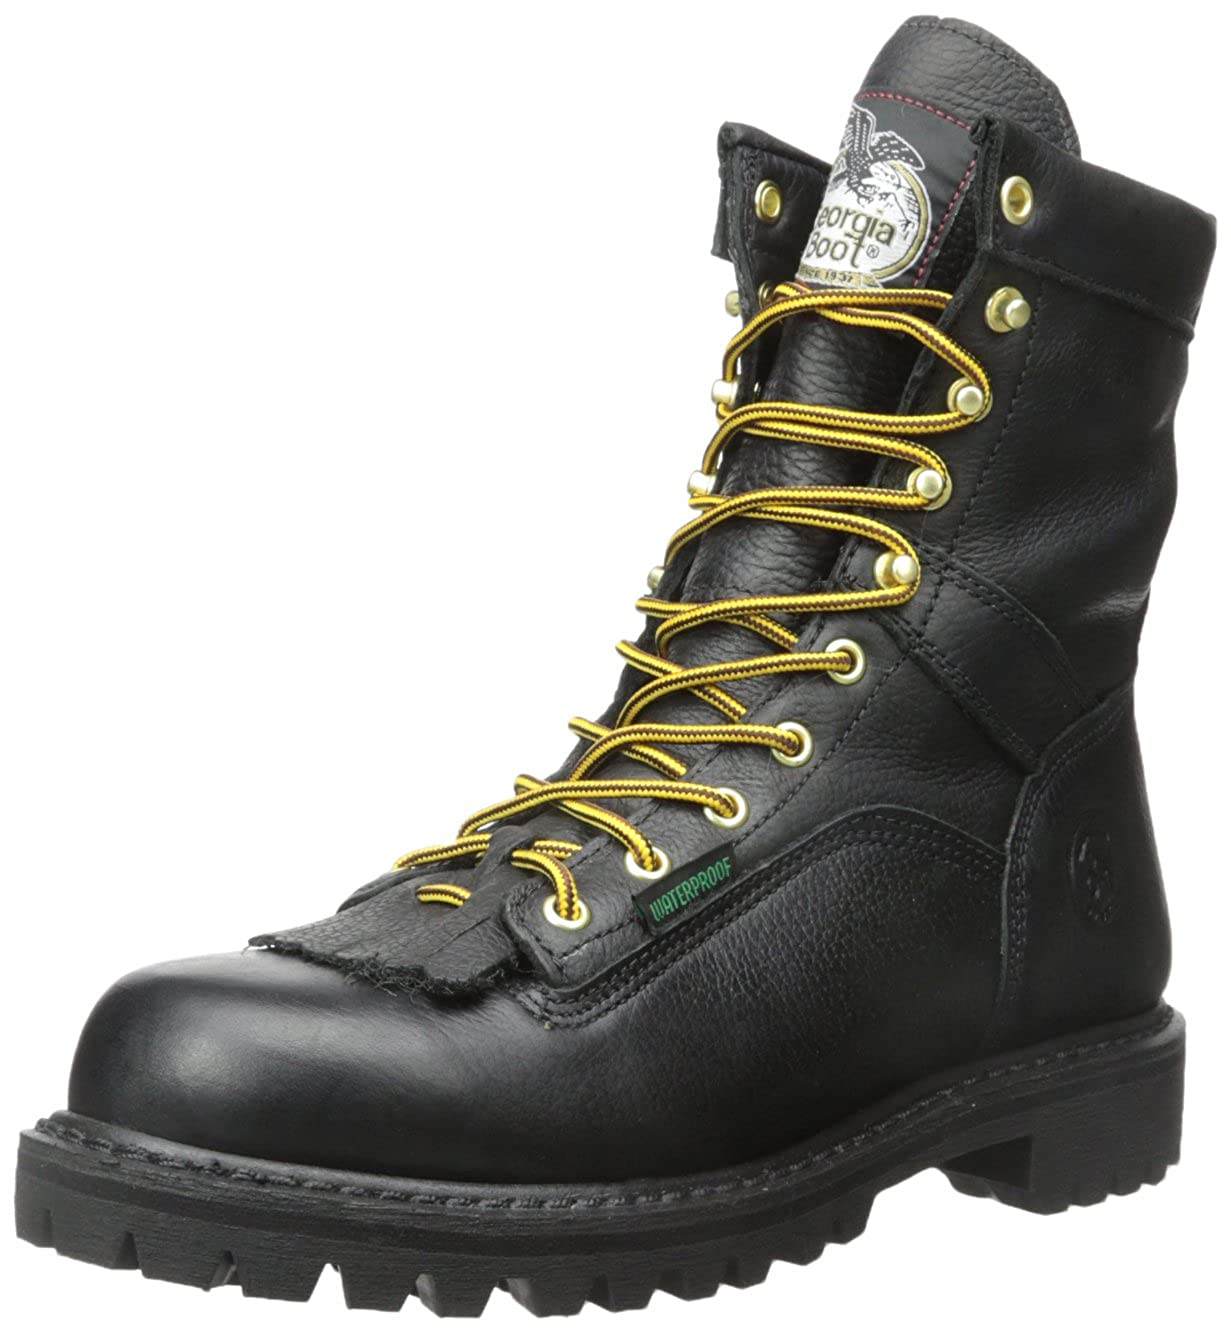 09296ae8a85 Georgia Boot Waterproof Lace-to-Toe Work Boot Black